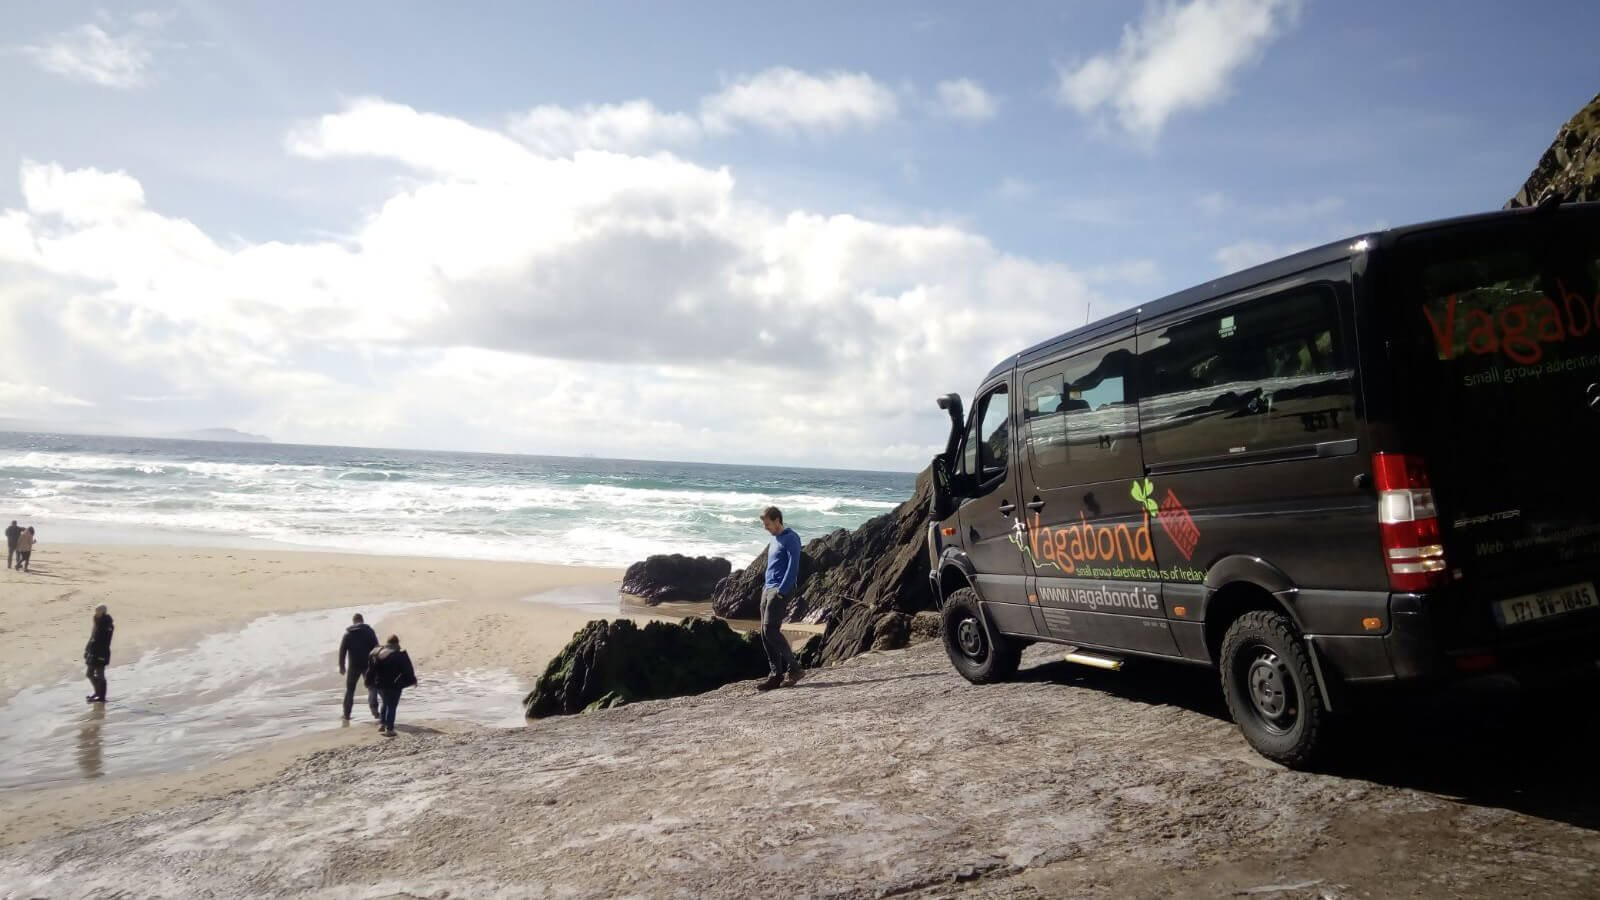 A Vagatron tour vehicle drives onto a beach in Ireland with guests in the background